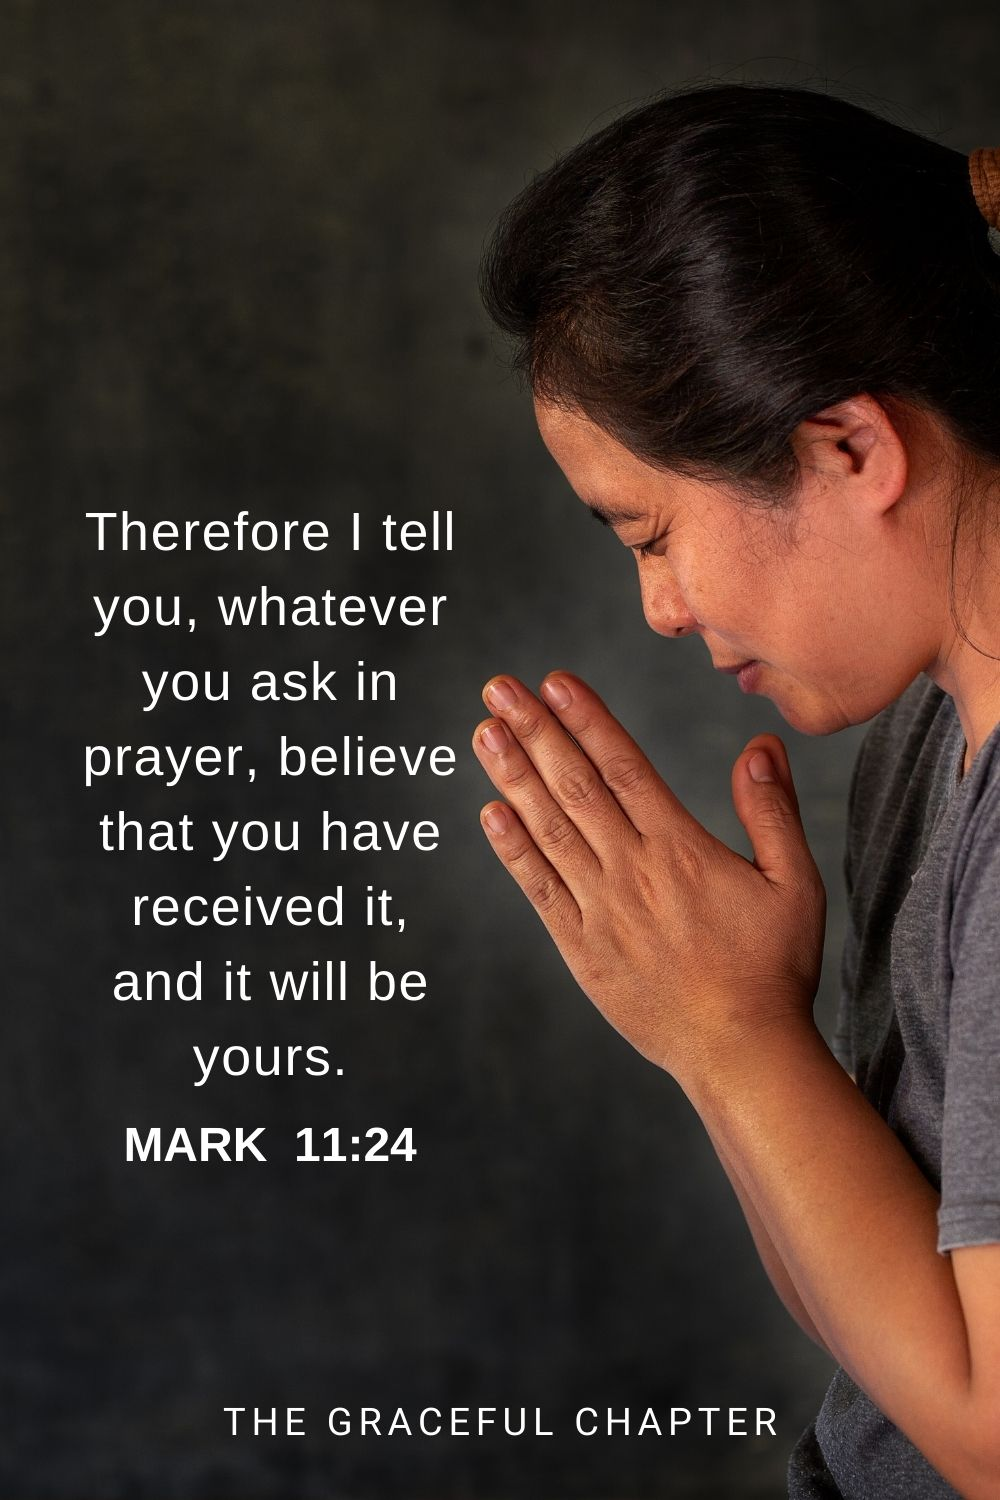 Therefore I tell you, whatever you ask in prayer, believe that you have received it, and it will be yours. Mark 11:24